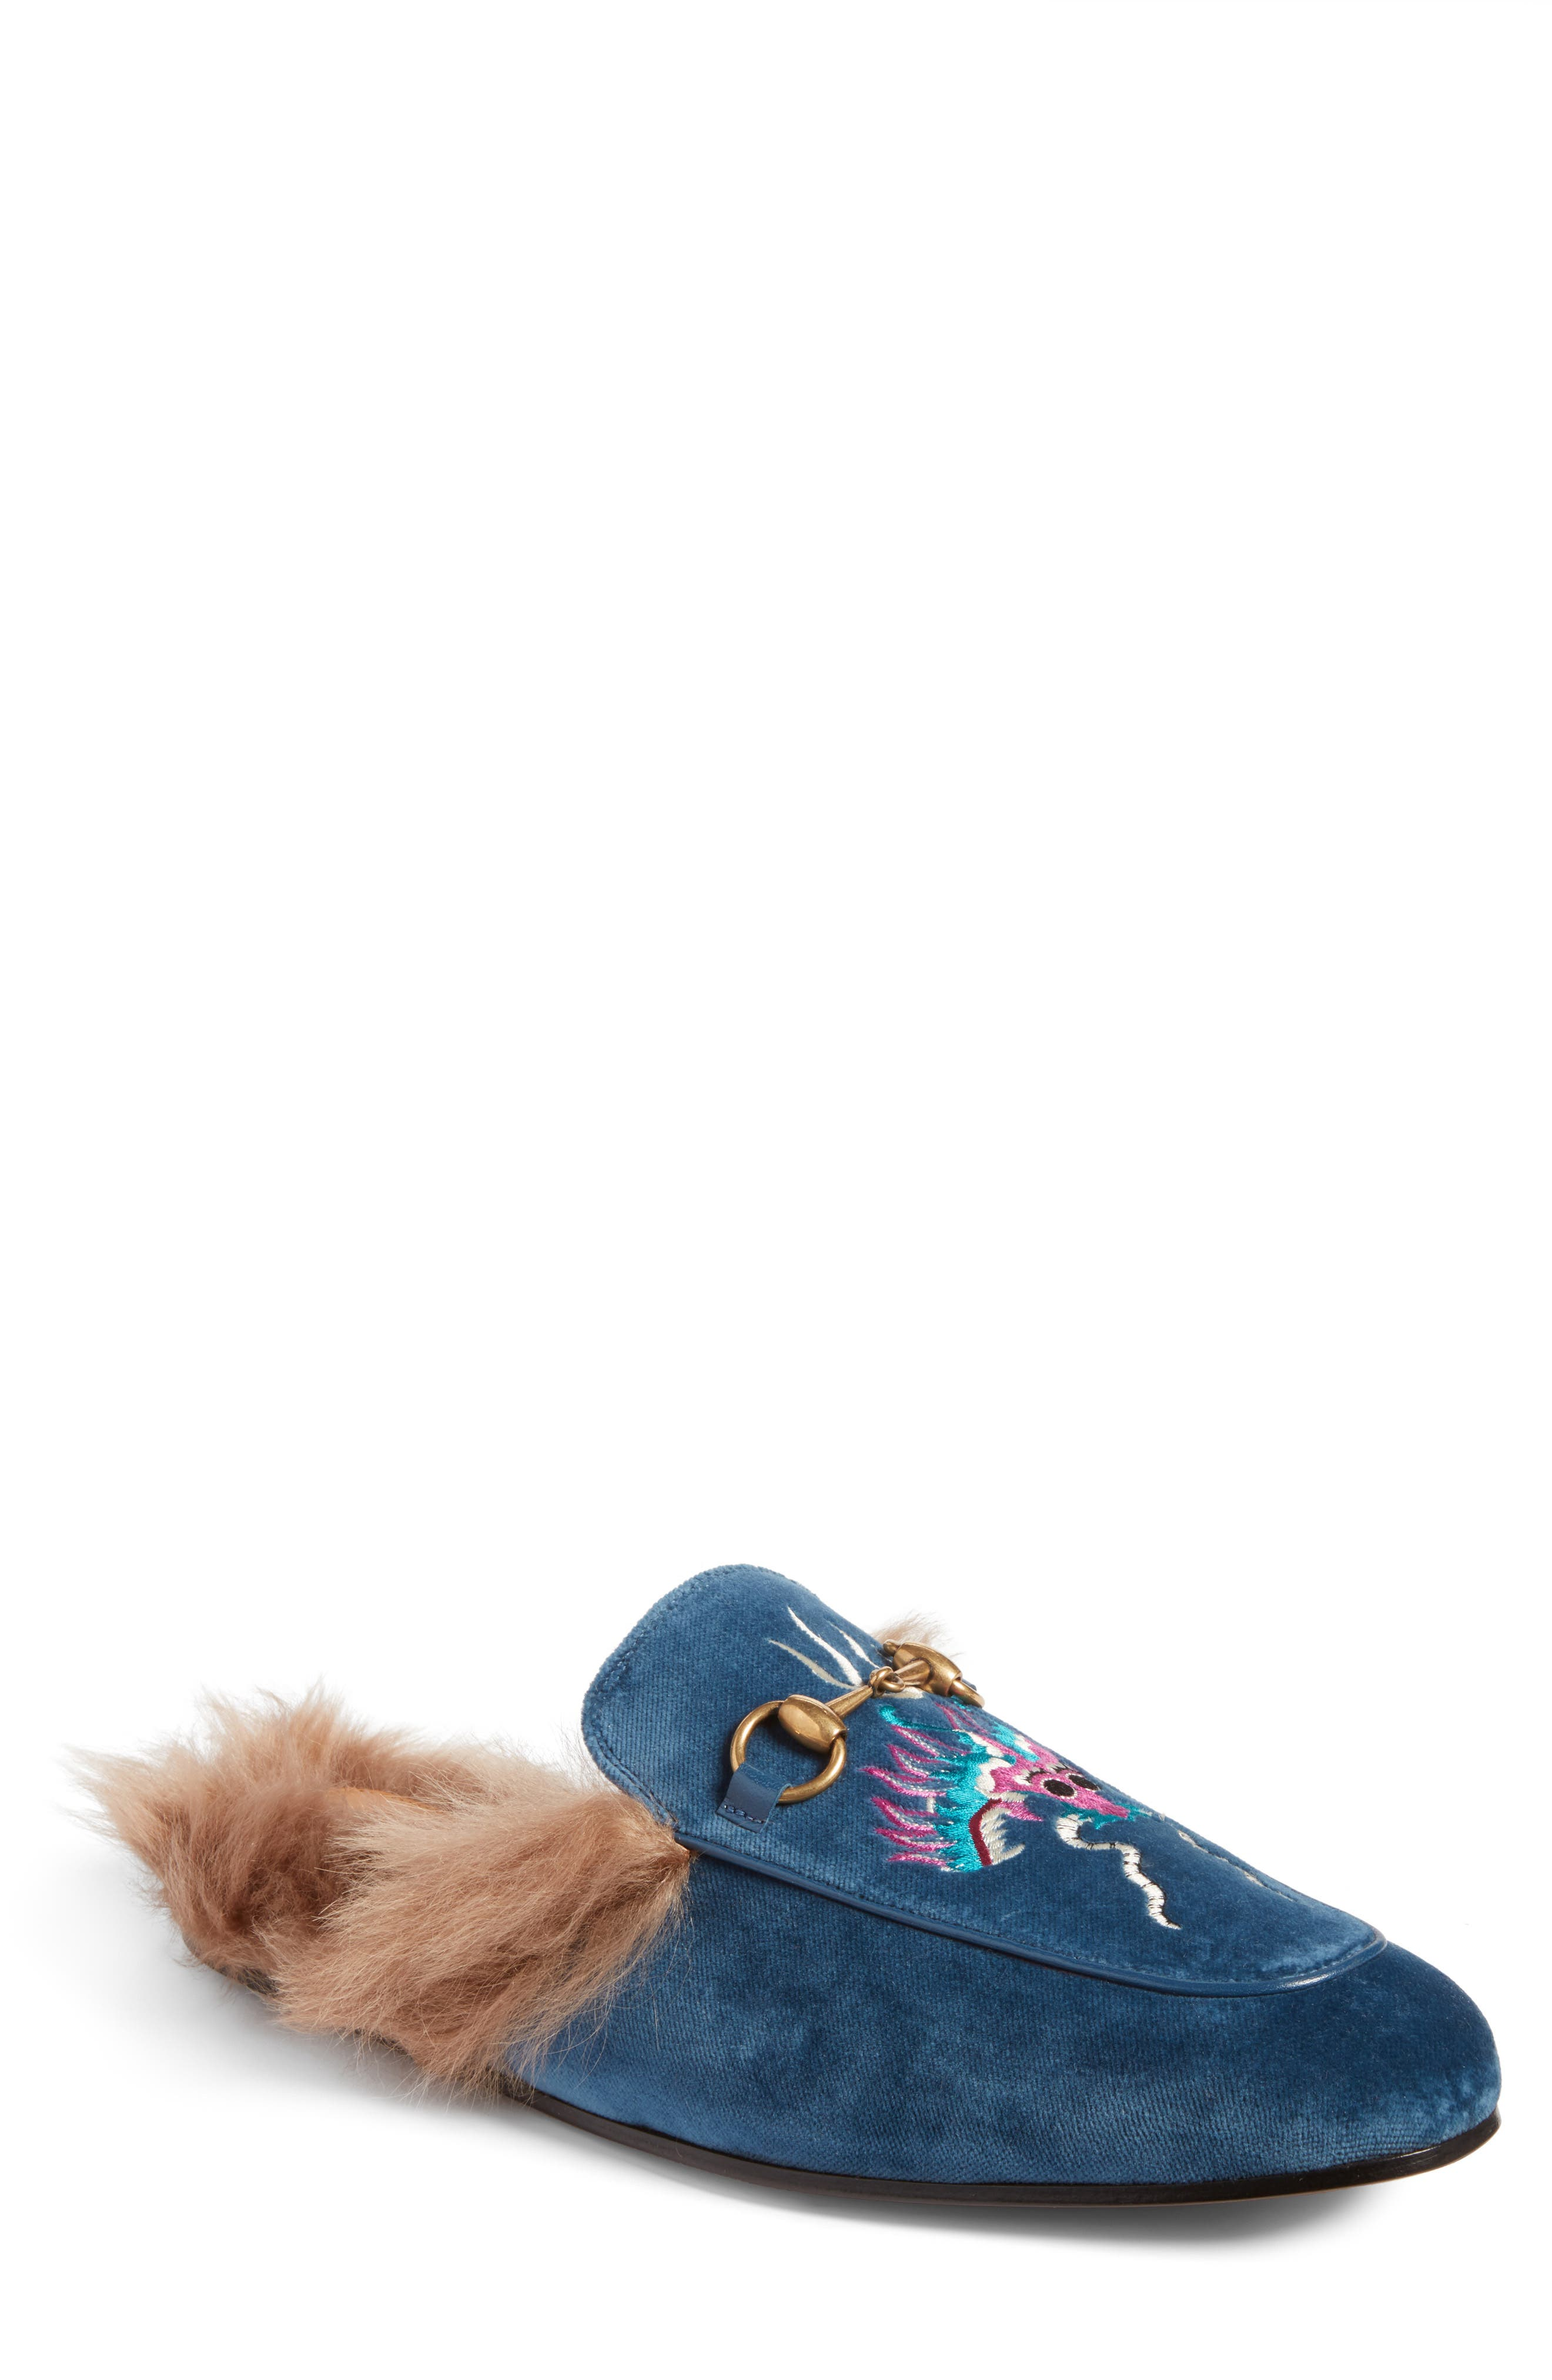 Princetown Genuine Shearling Lined Mule Loafer,                         Main,                         color, Cobalt Multi